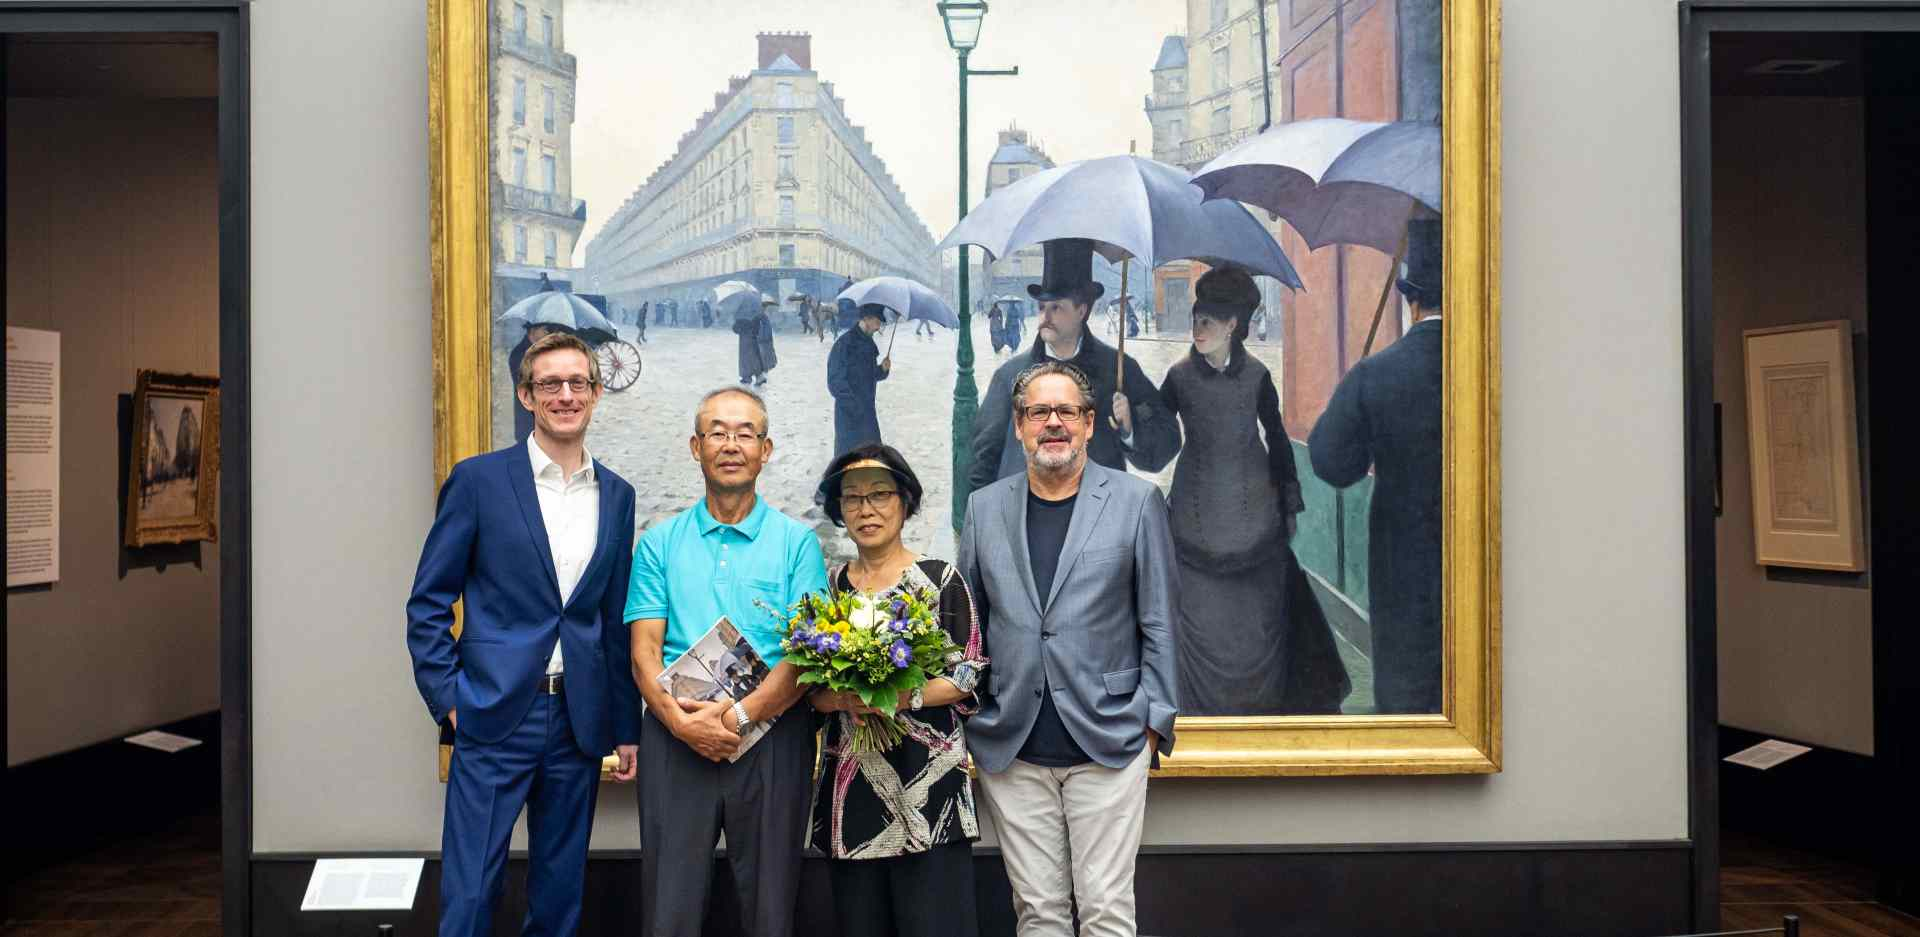 Udo Kittelmann, Director of the Nationalgalerie – Staatliche Museen zu Berlin, Ji Yong-Sung with her husband and Ralph Gleis, Head of the Alten Nationalgalerie (from right to left)